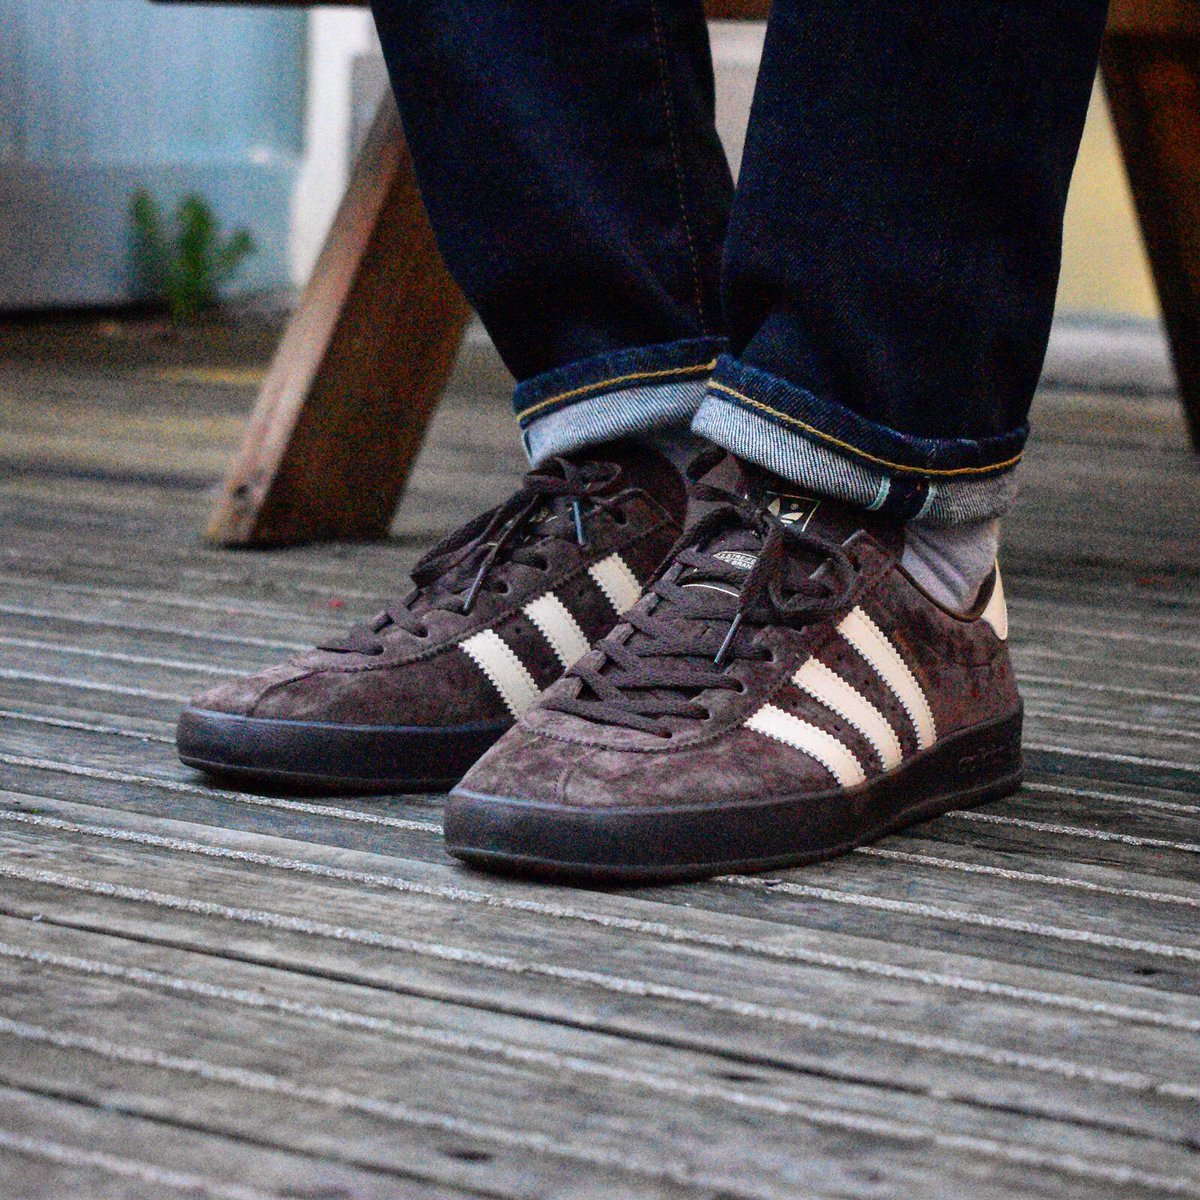 Attic Clothing On Twitter An Great New Colourway In The Ever Popular Adidasoriginals Broomfield Trainer Brown Easy Yellow Gold Metallic In Store And Online Now Https T Co Z2hn1zfrhw Https T Co Vy690ogu2z